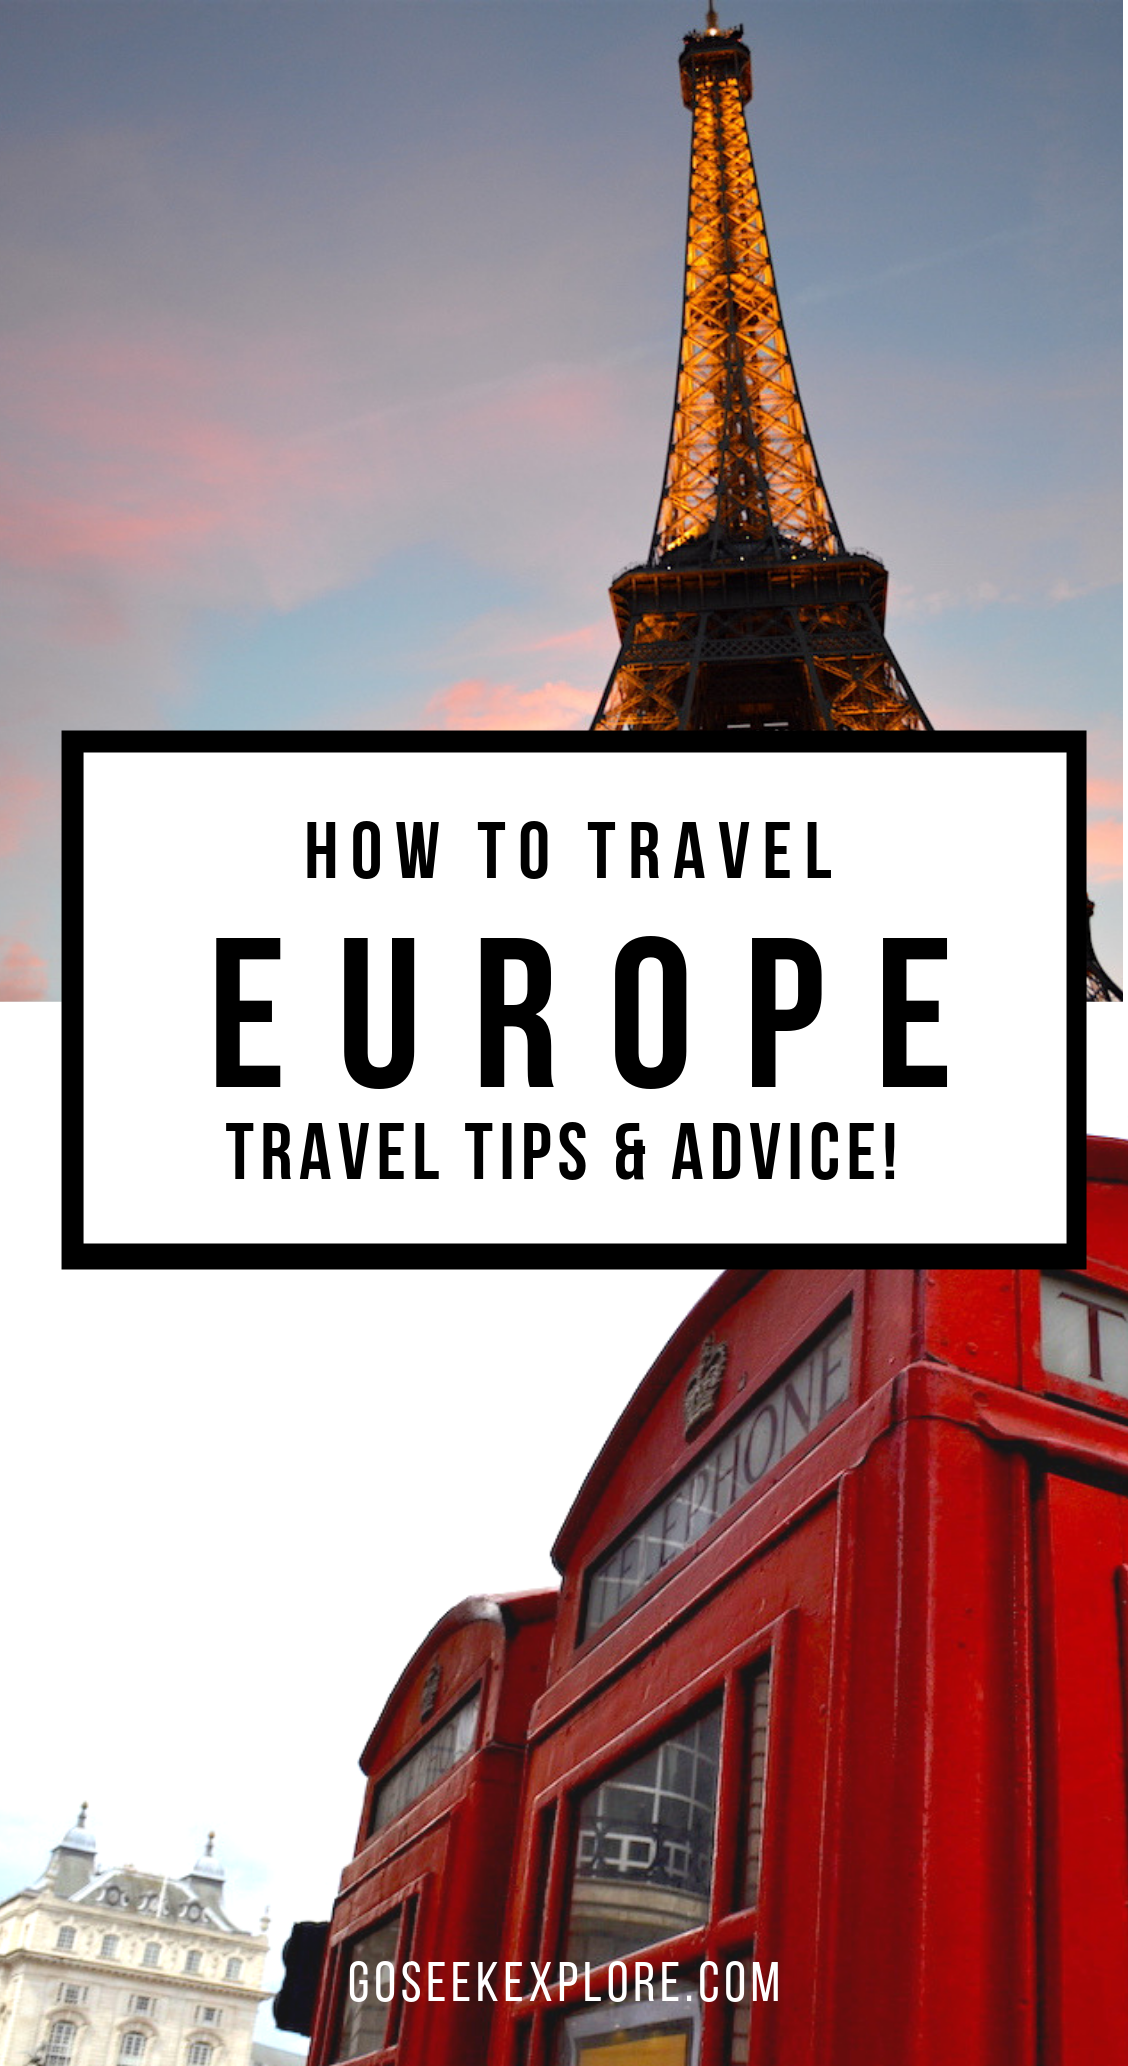 How To Travel Europe - Travel Tips & Advice! Great information for traveling Europe, especially if it is your first time on the continent. GoSeekExplore.com